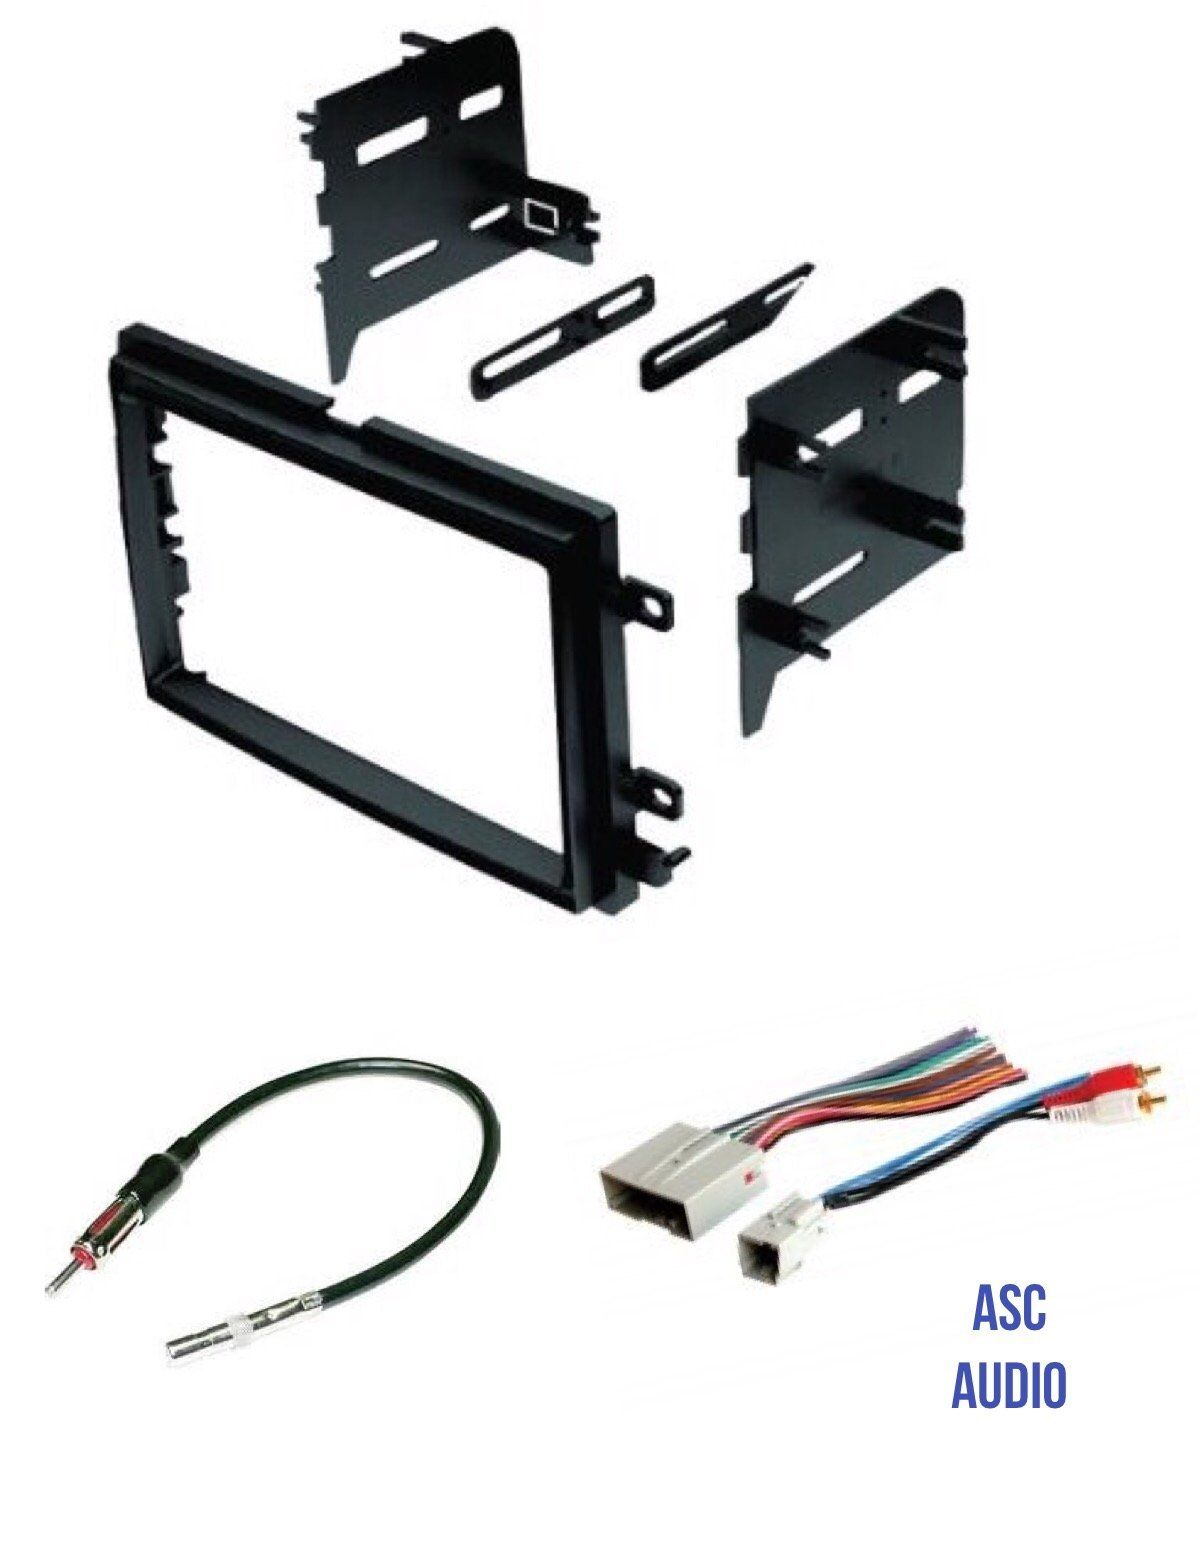 hight resolution of asc audio car stereo radio install dash kit wire harness and antenna adapter to install a double din radio for some ford lincoln mercury vehicles